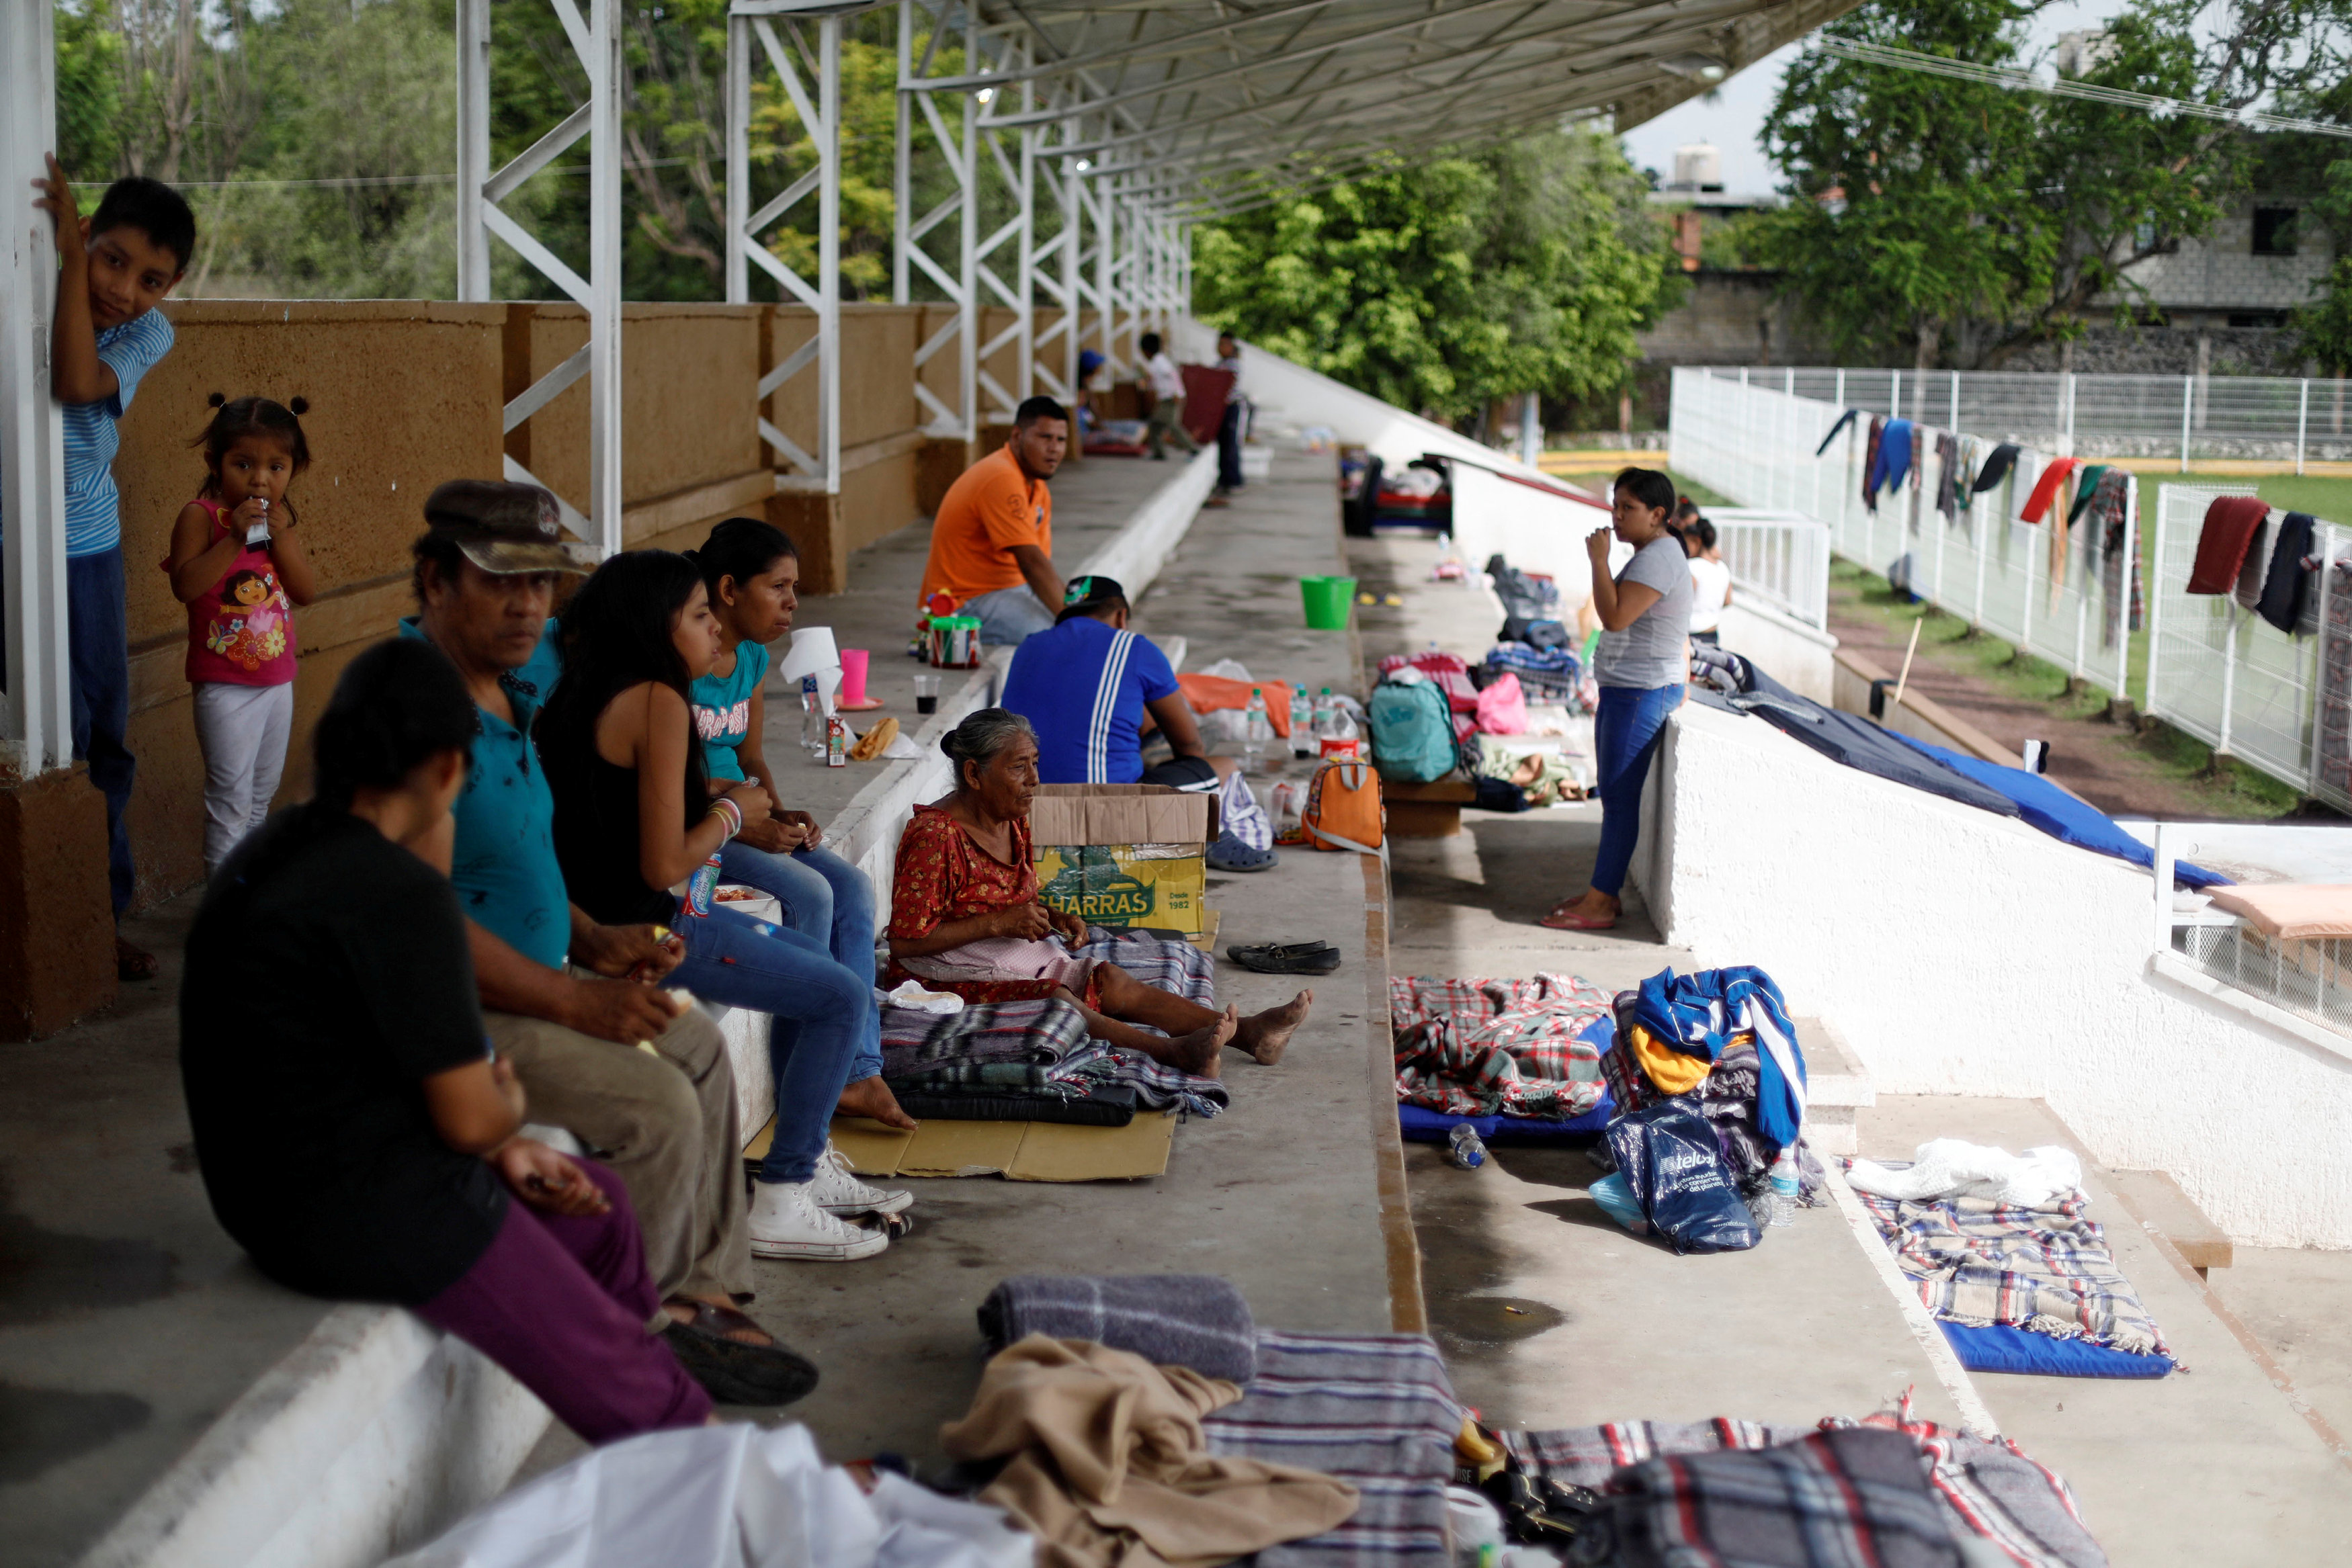 People sit in the bleachers of a stadium at a shelter set up by the army after an earthquake, in Jojutla de Juarez, Mexico September 21, 2017. REUTERS/Edgard Garrido